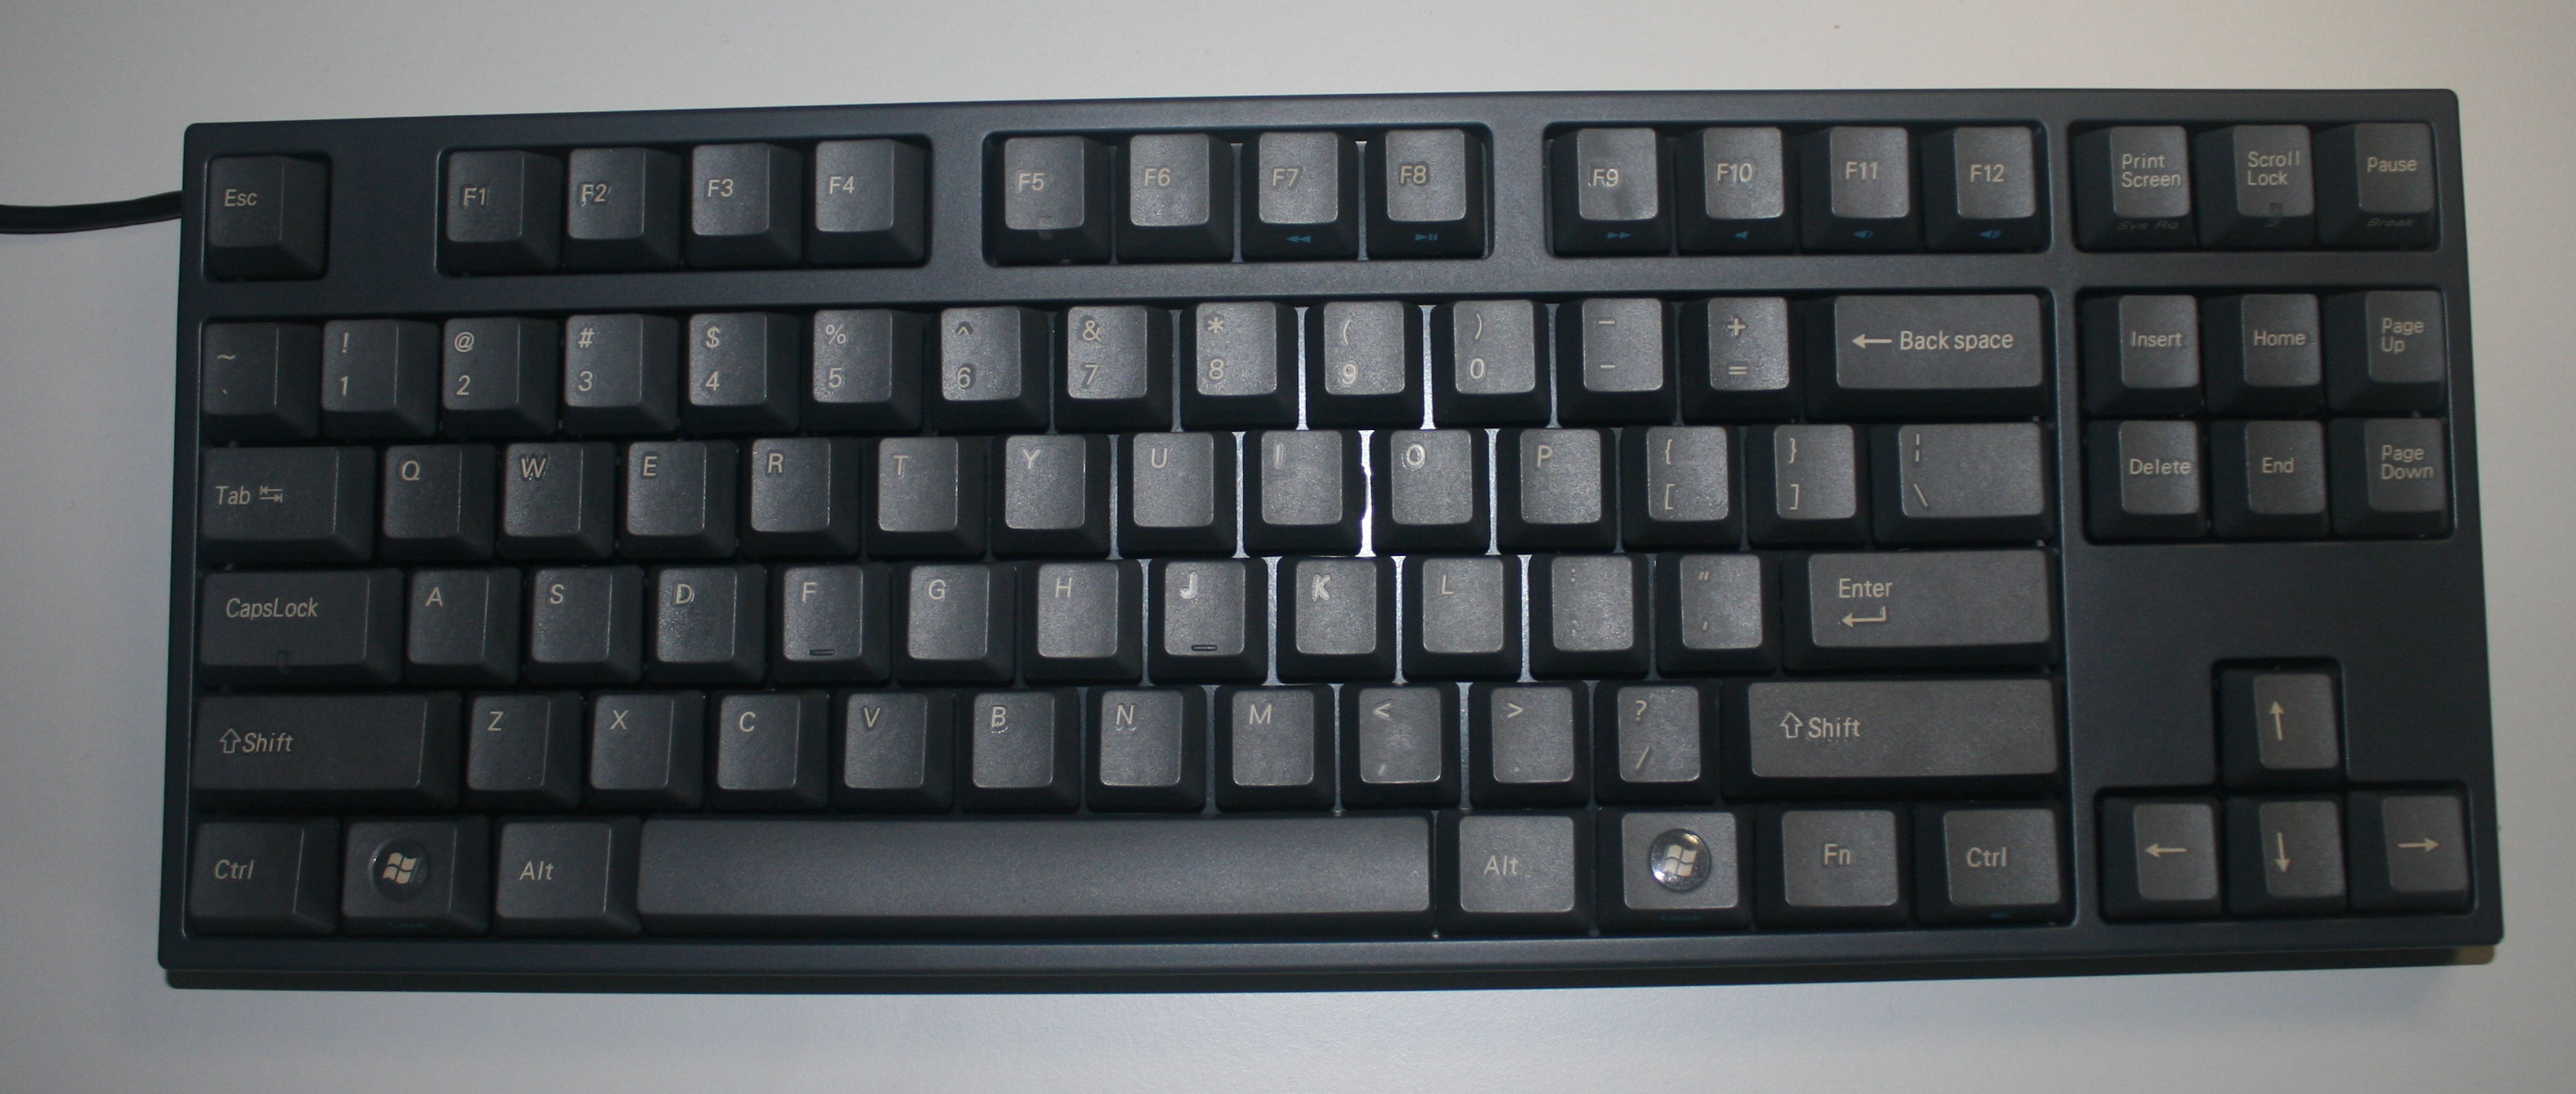 leopold-FC700R-top